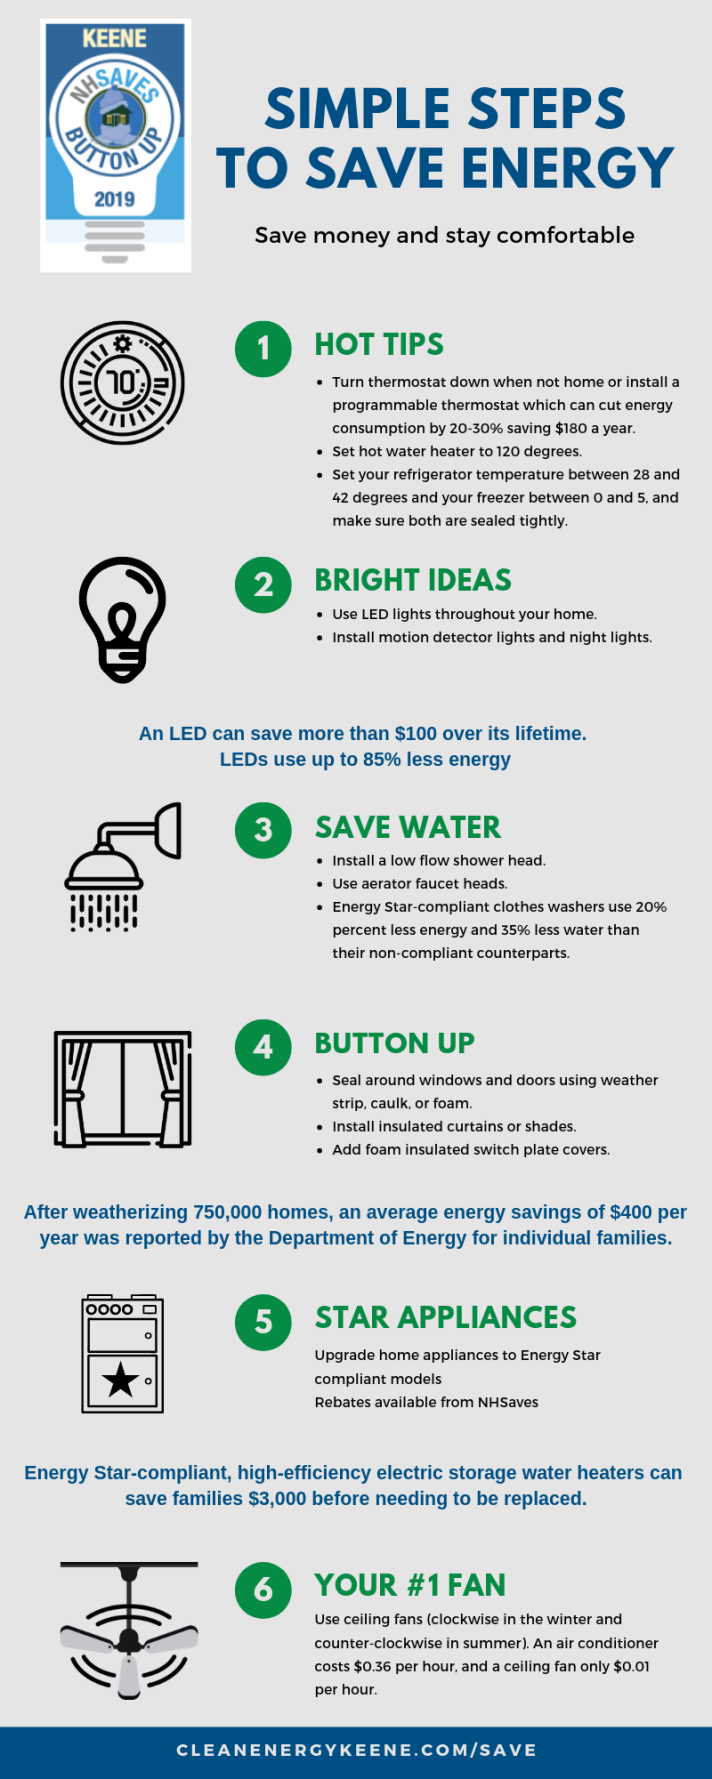 Simple Steps to Save Energy